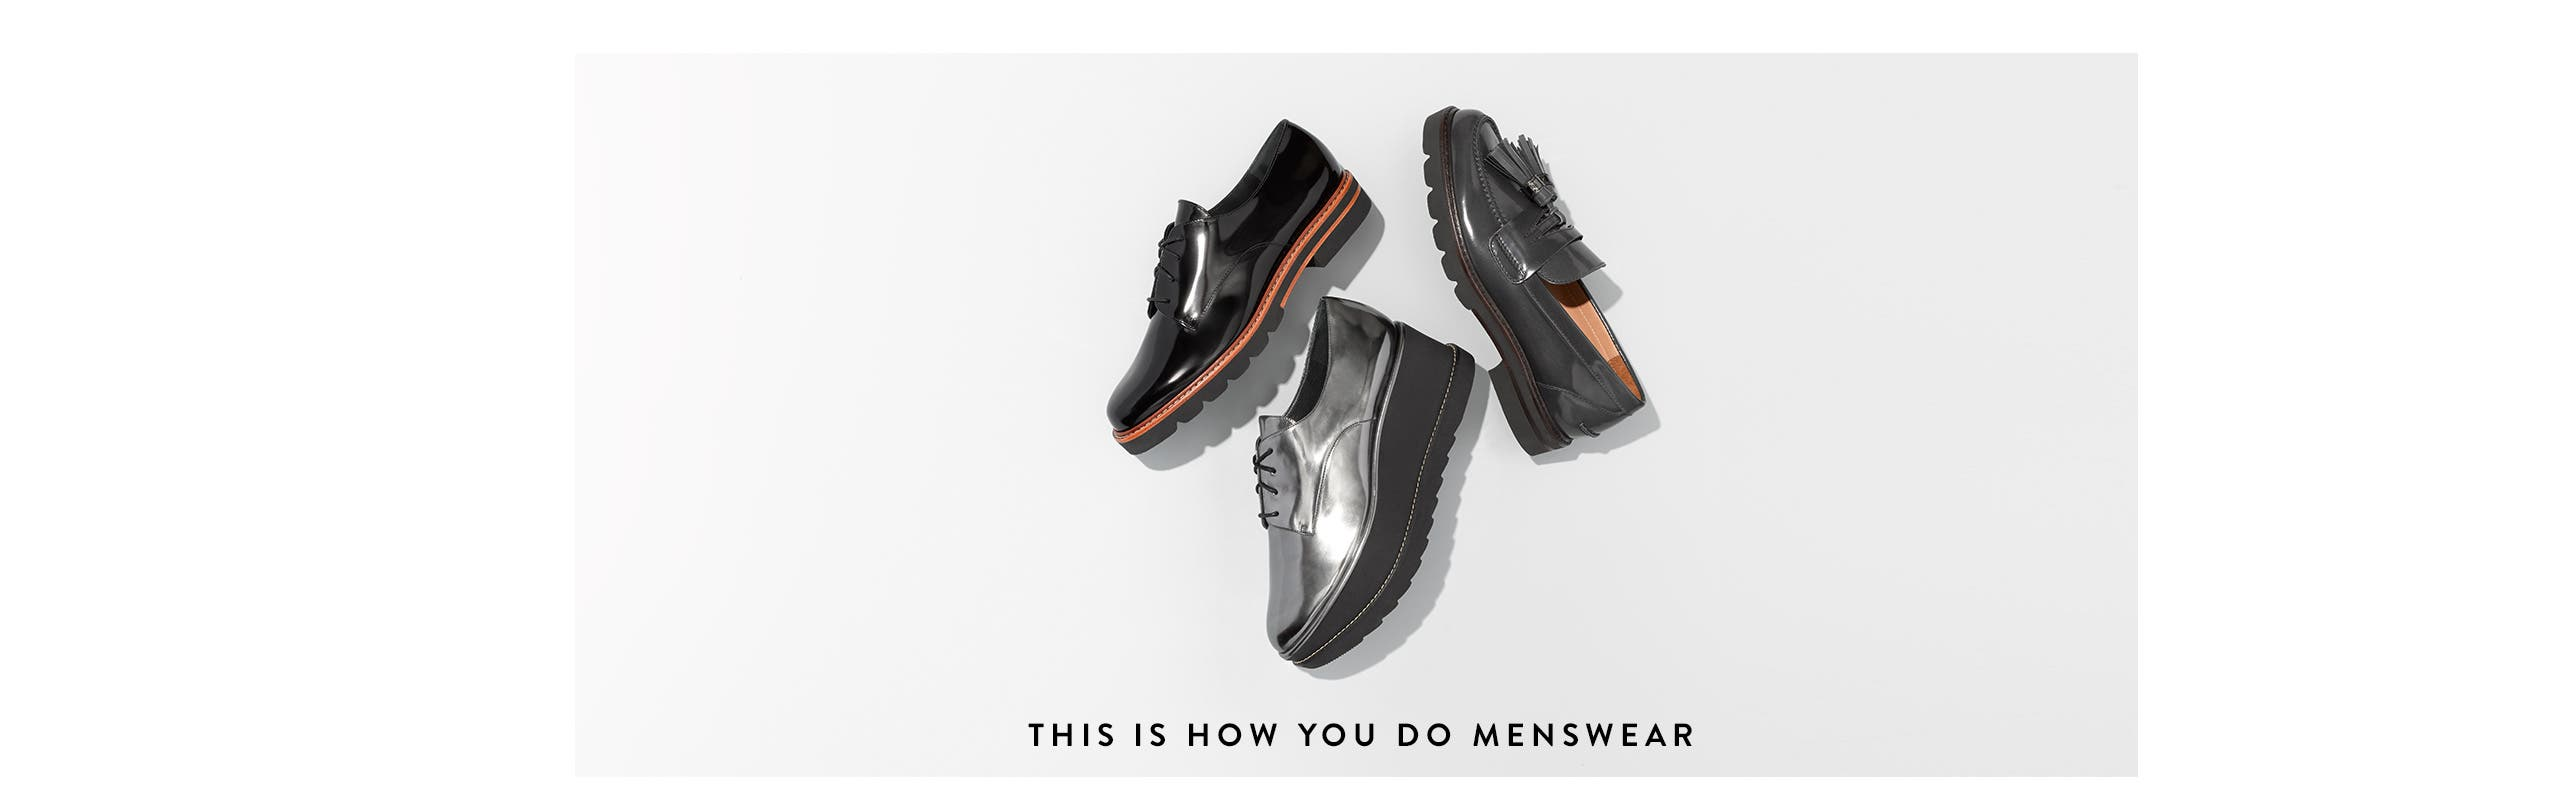 This is how you do menswear shoes.